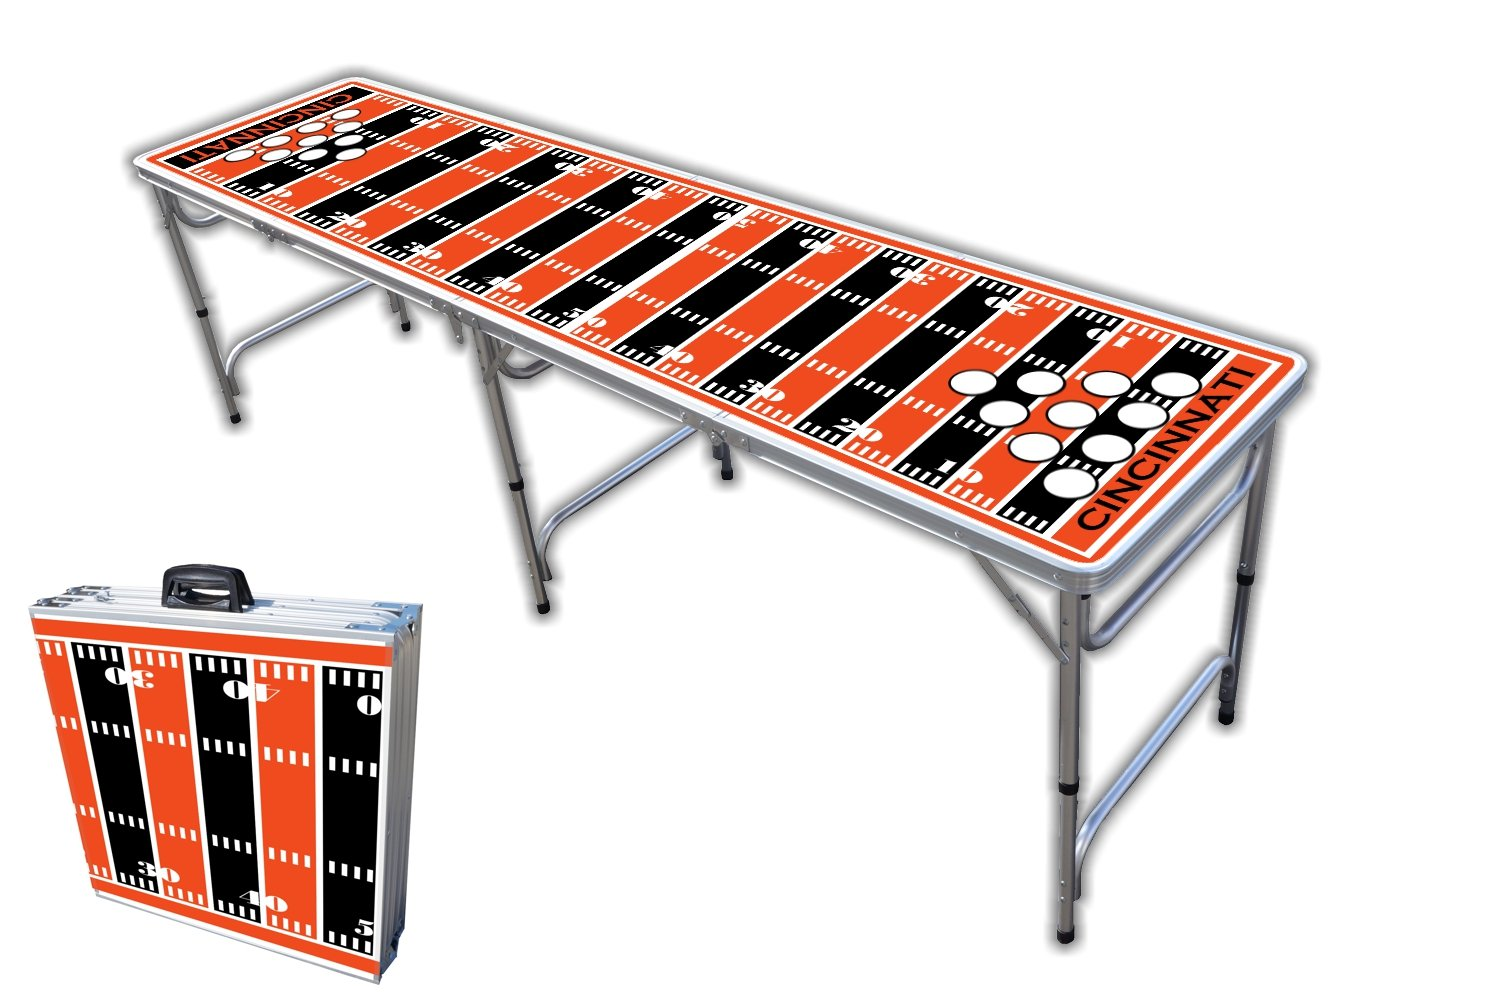 8-Foot Professional Beer Pong Table w/Holes - Cincinnati Football Field Graphic by PartyPongTables.com